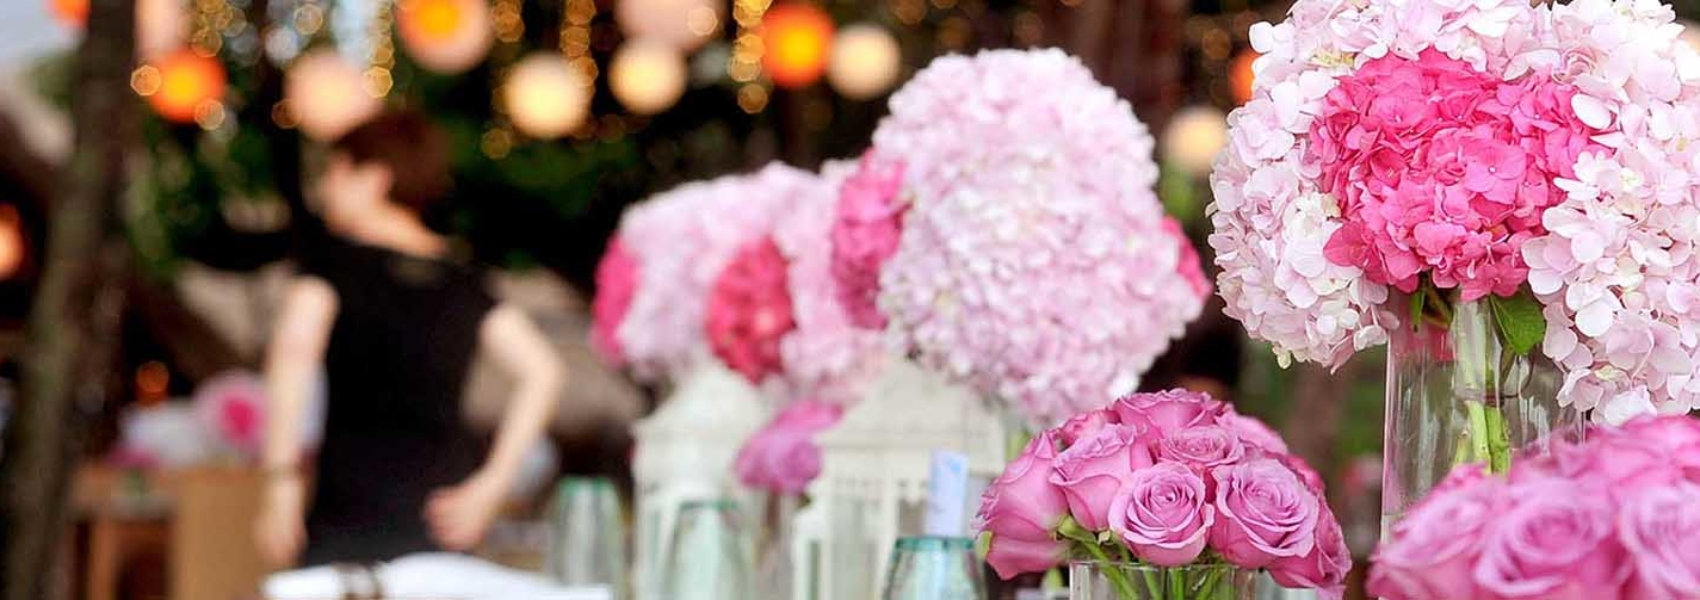 wedding-centerpiece-of-pink-roses-and-pink-hydrangeas